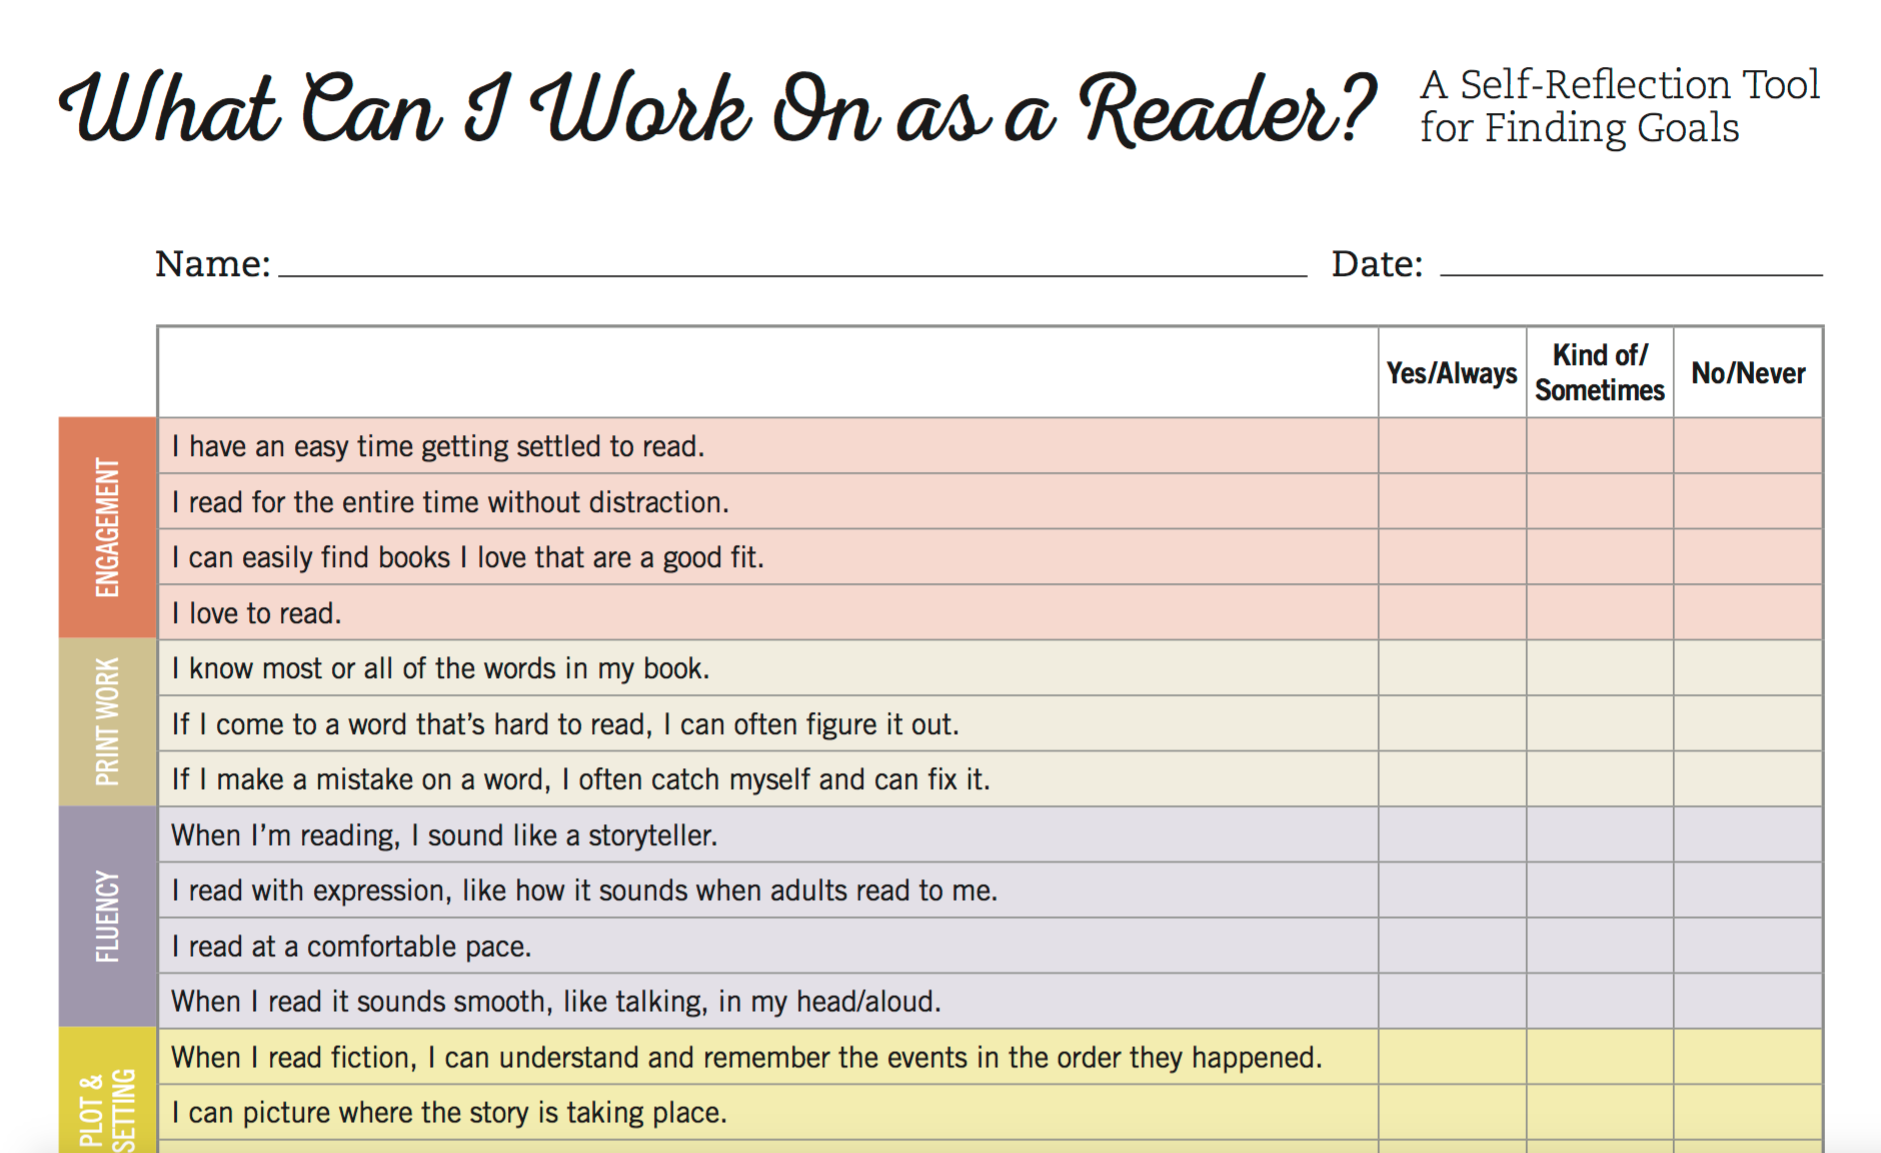 What Can I Work On As A Reader? A Self-Reflection Tool for Finding Goals